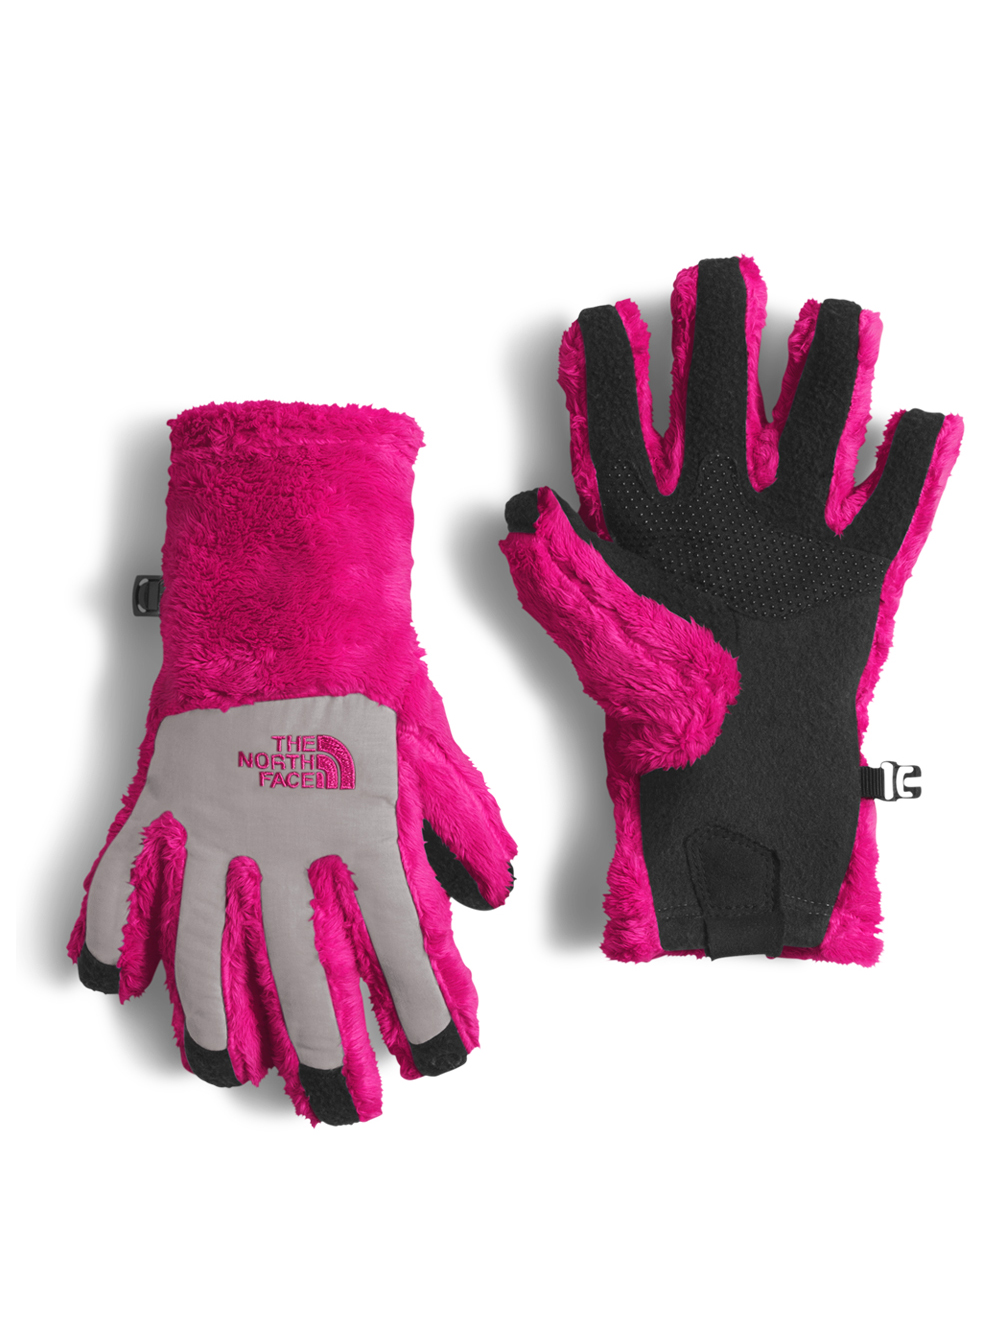 The North Face Girls' Youth Denali Thermal Etip Glove (Sizes S - L)